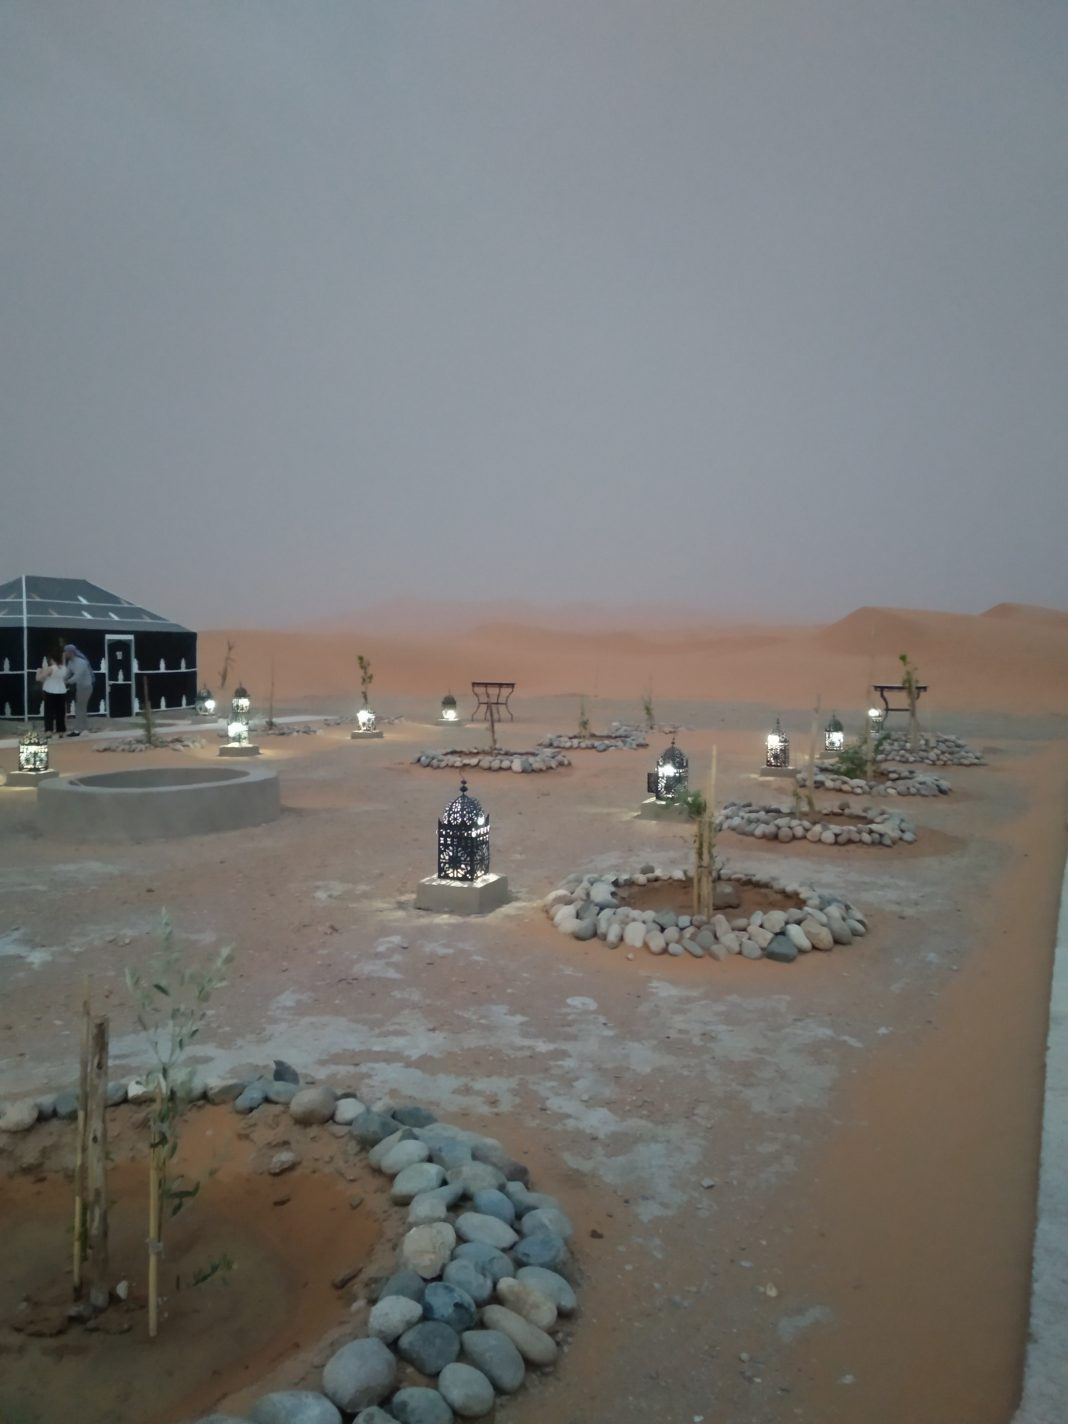 Ons tentenkamp in de Sahara